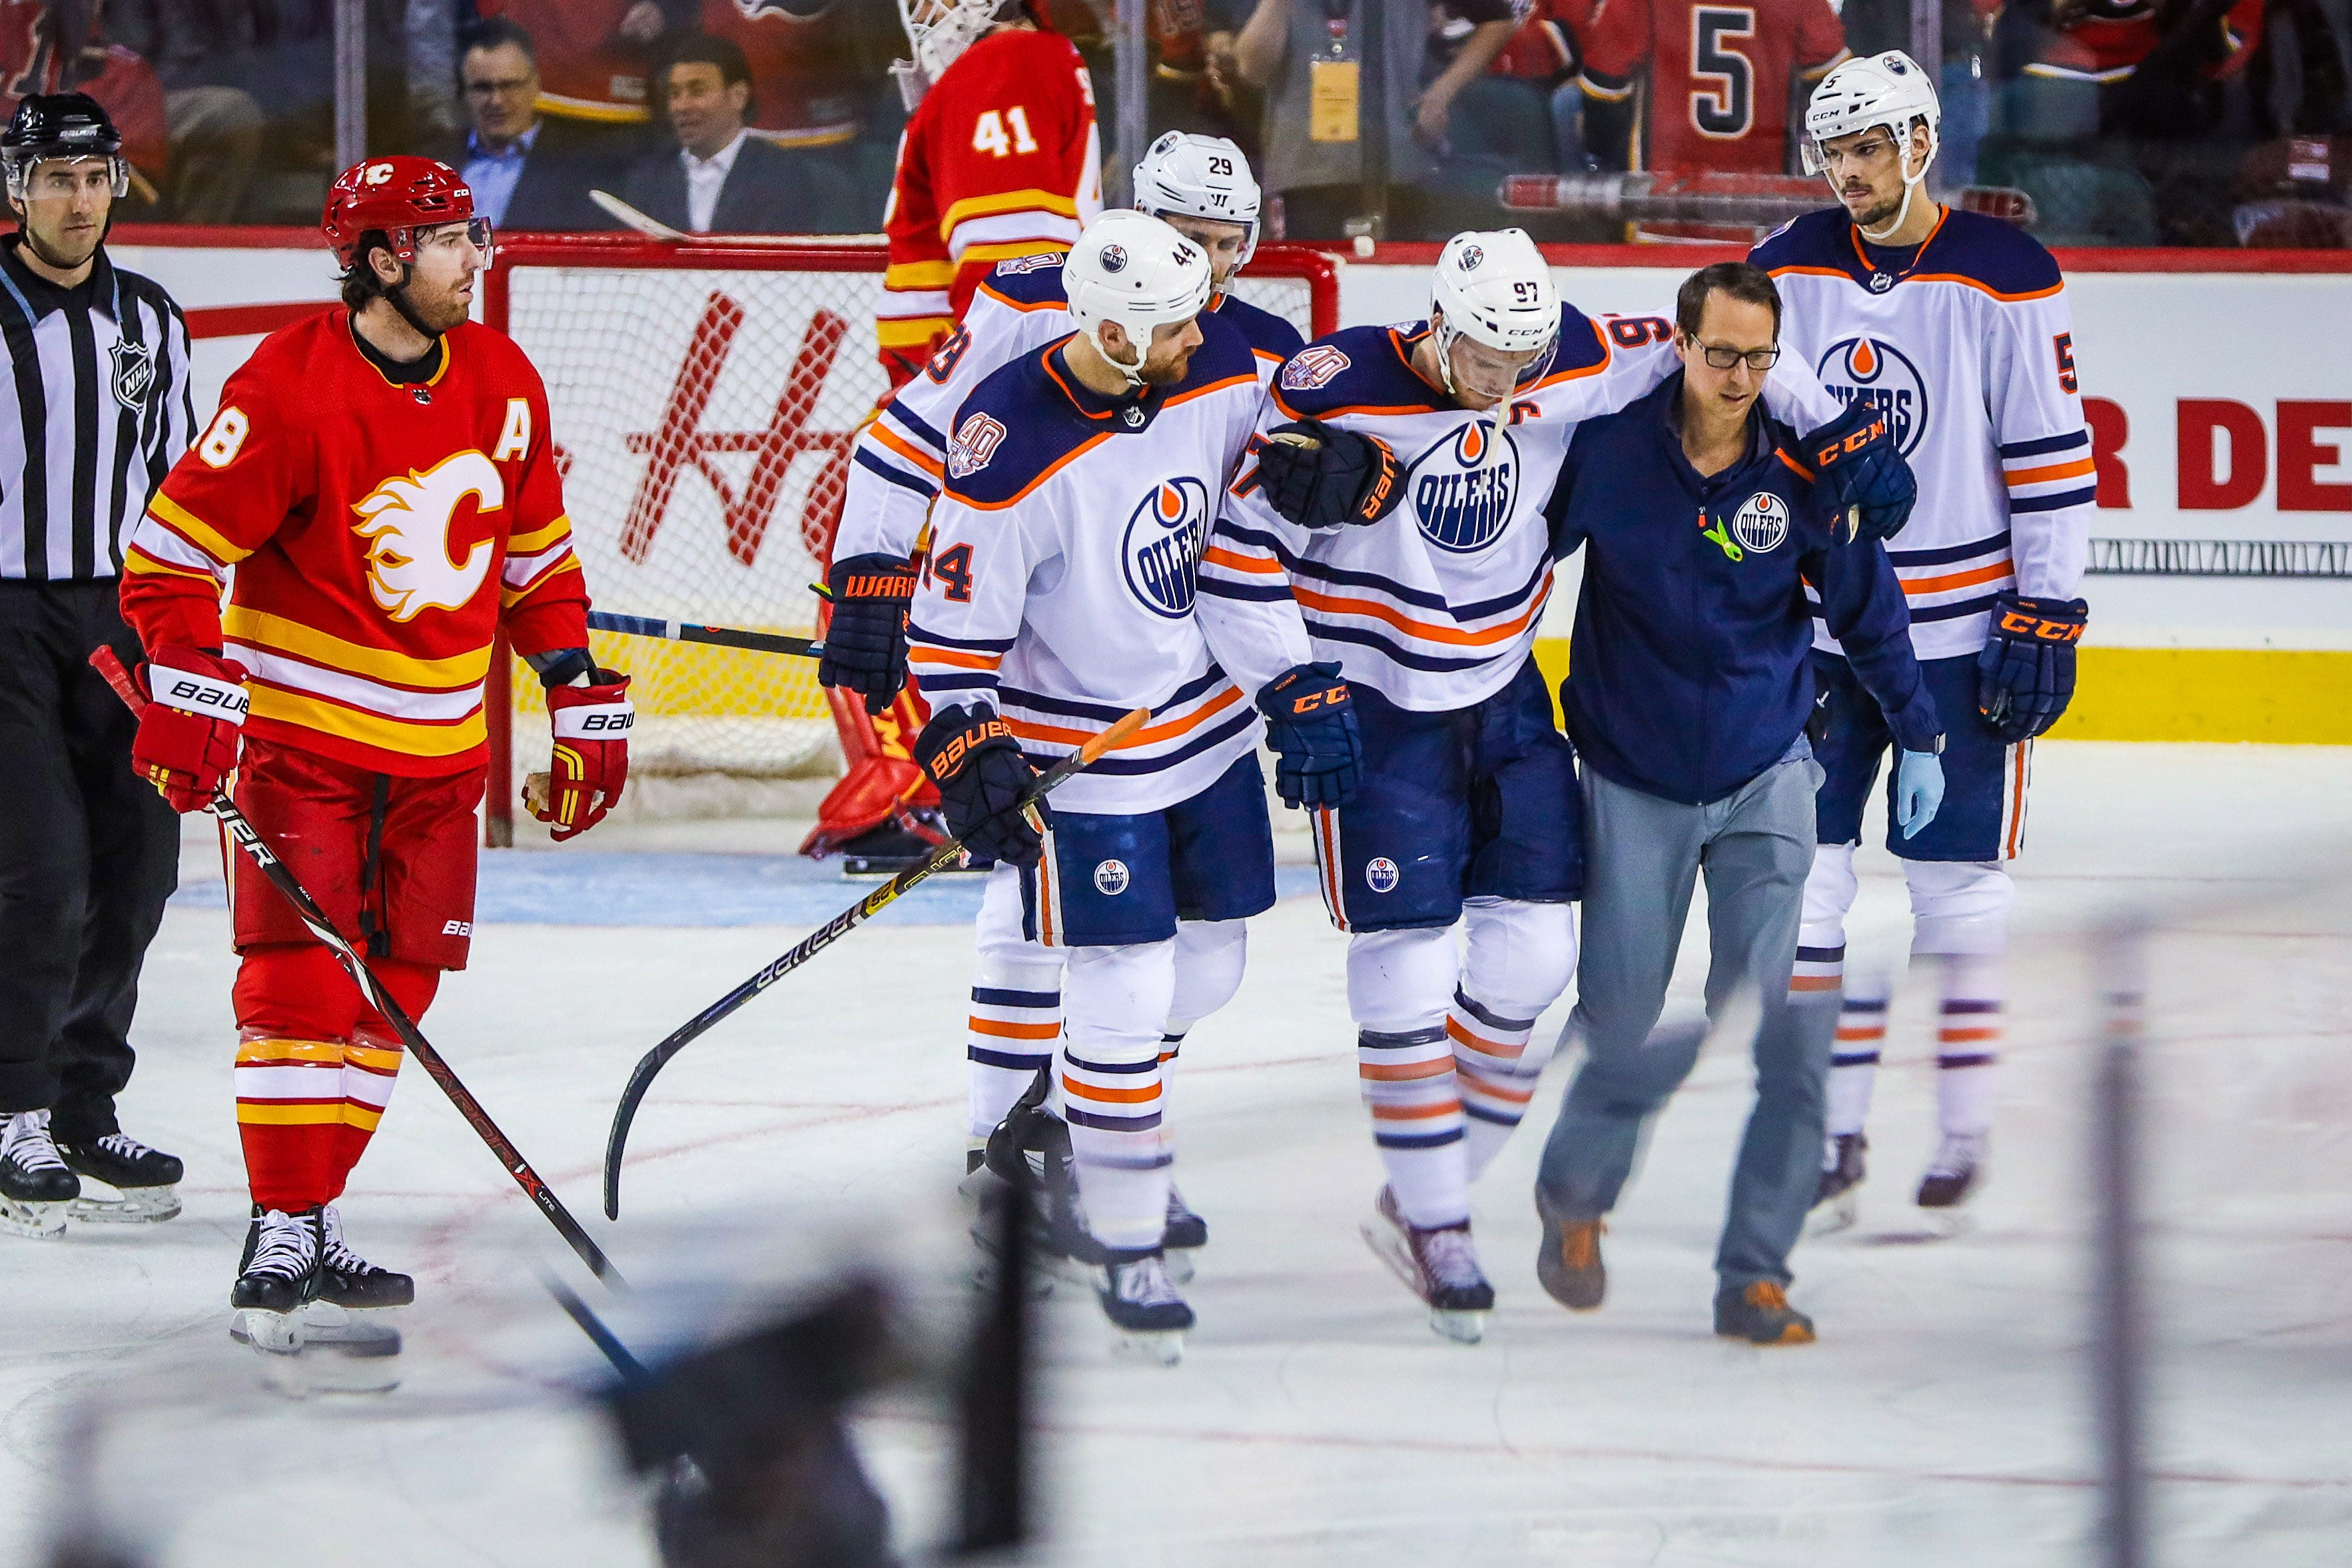 Oilers star Connor McDavid leaves game after crashing into net in season finale